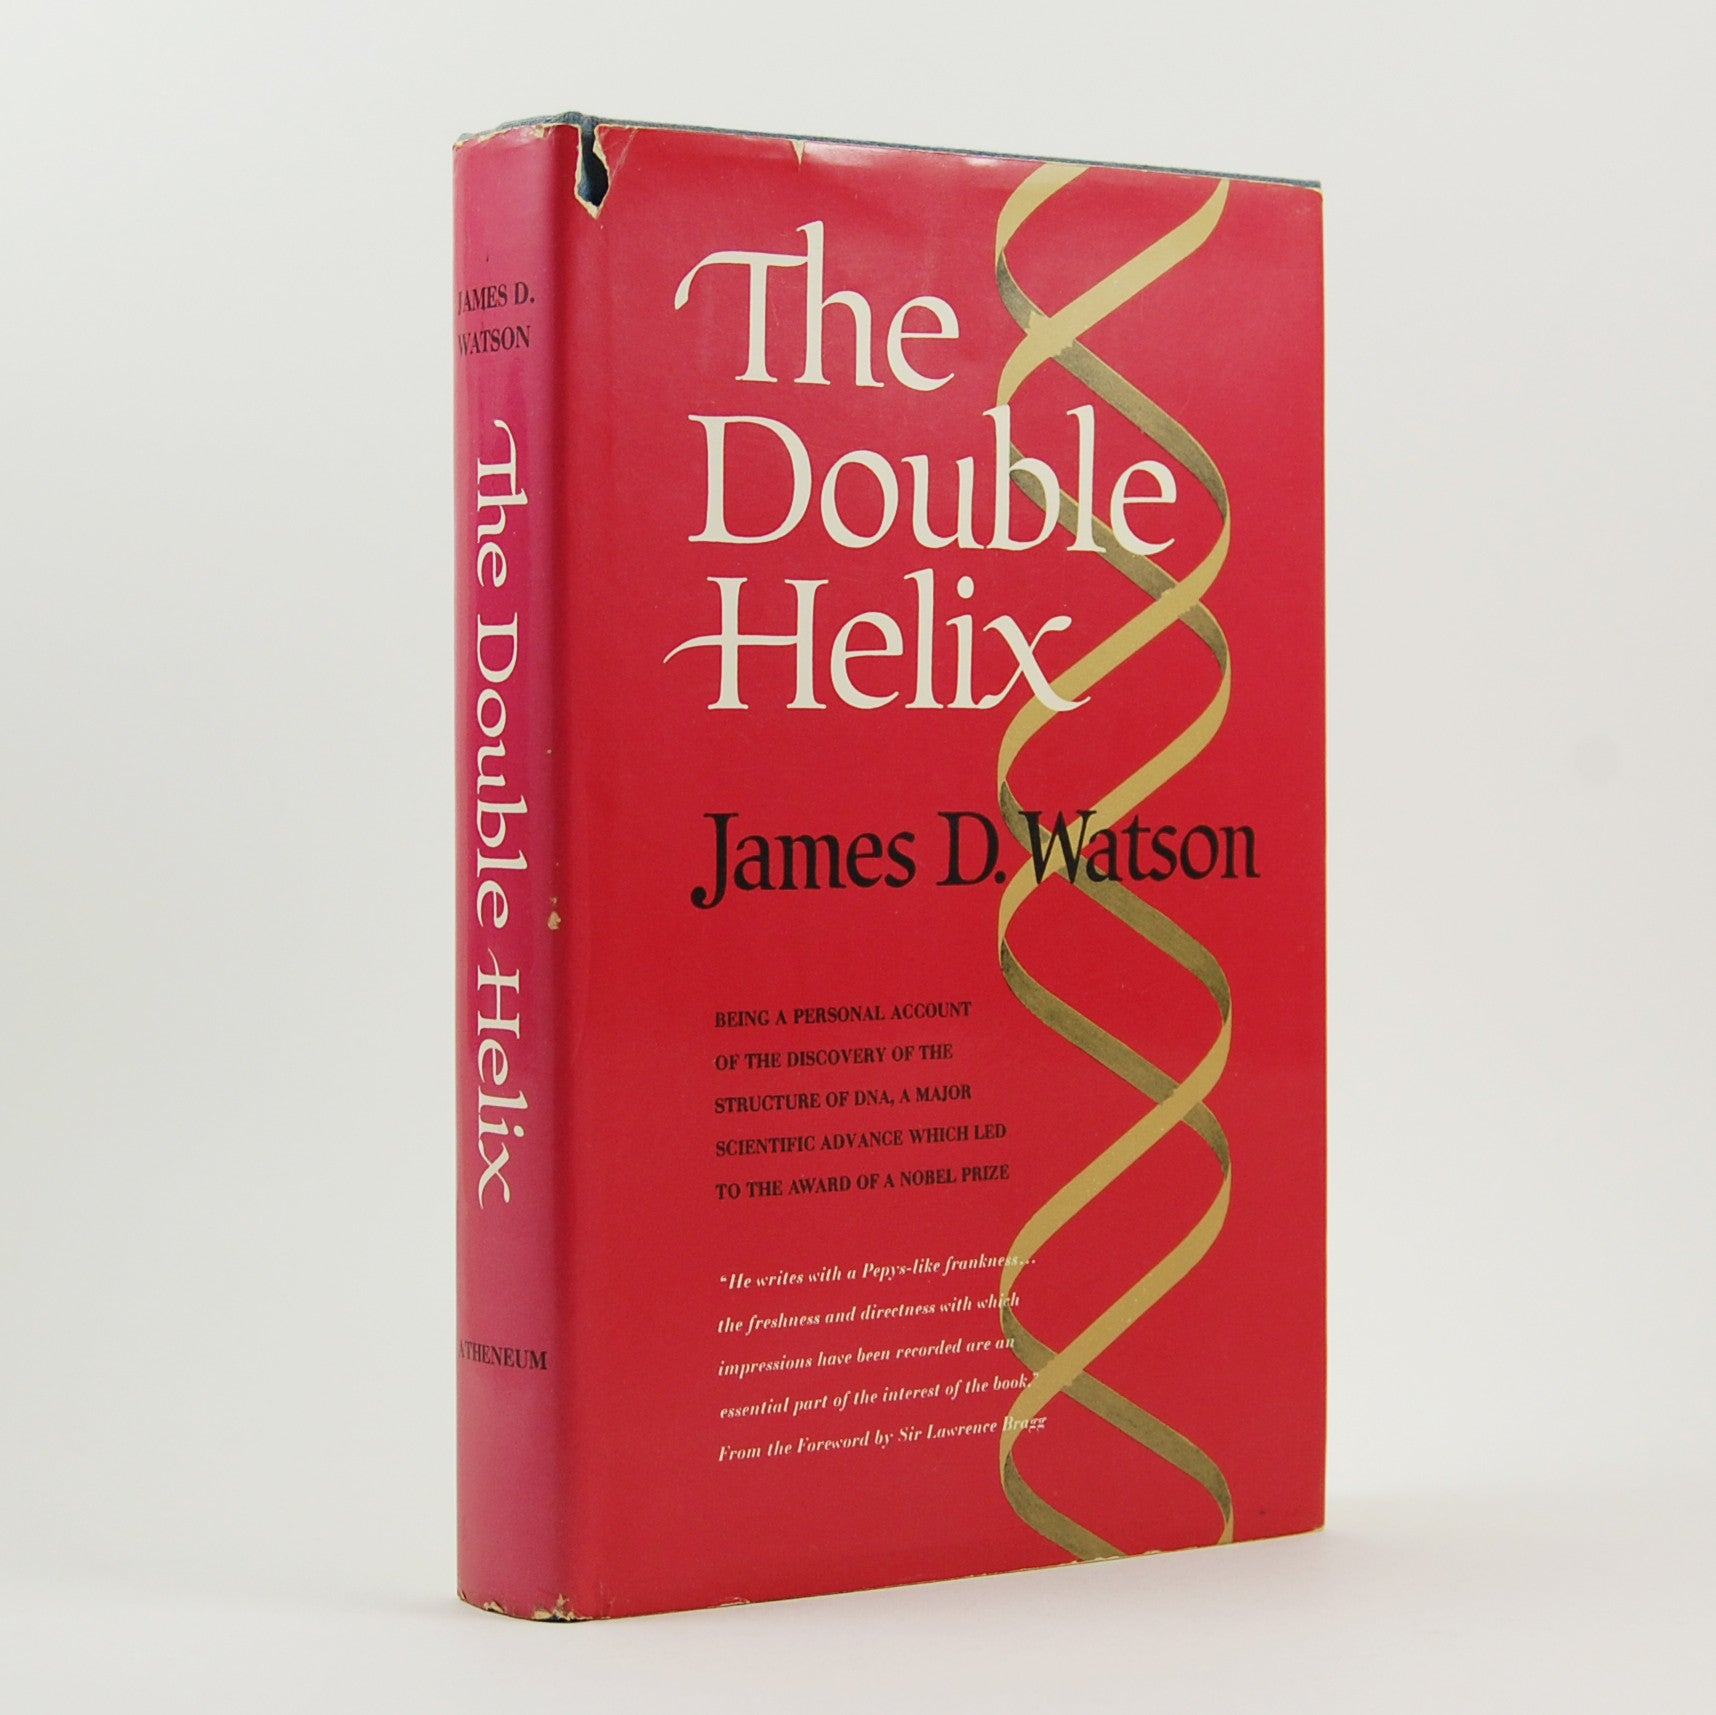 The Double Helix By James D Watson